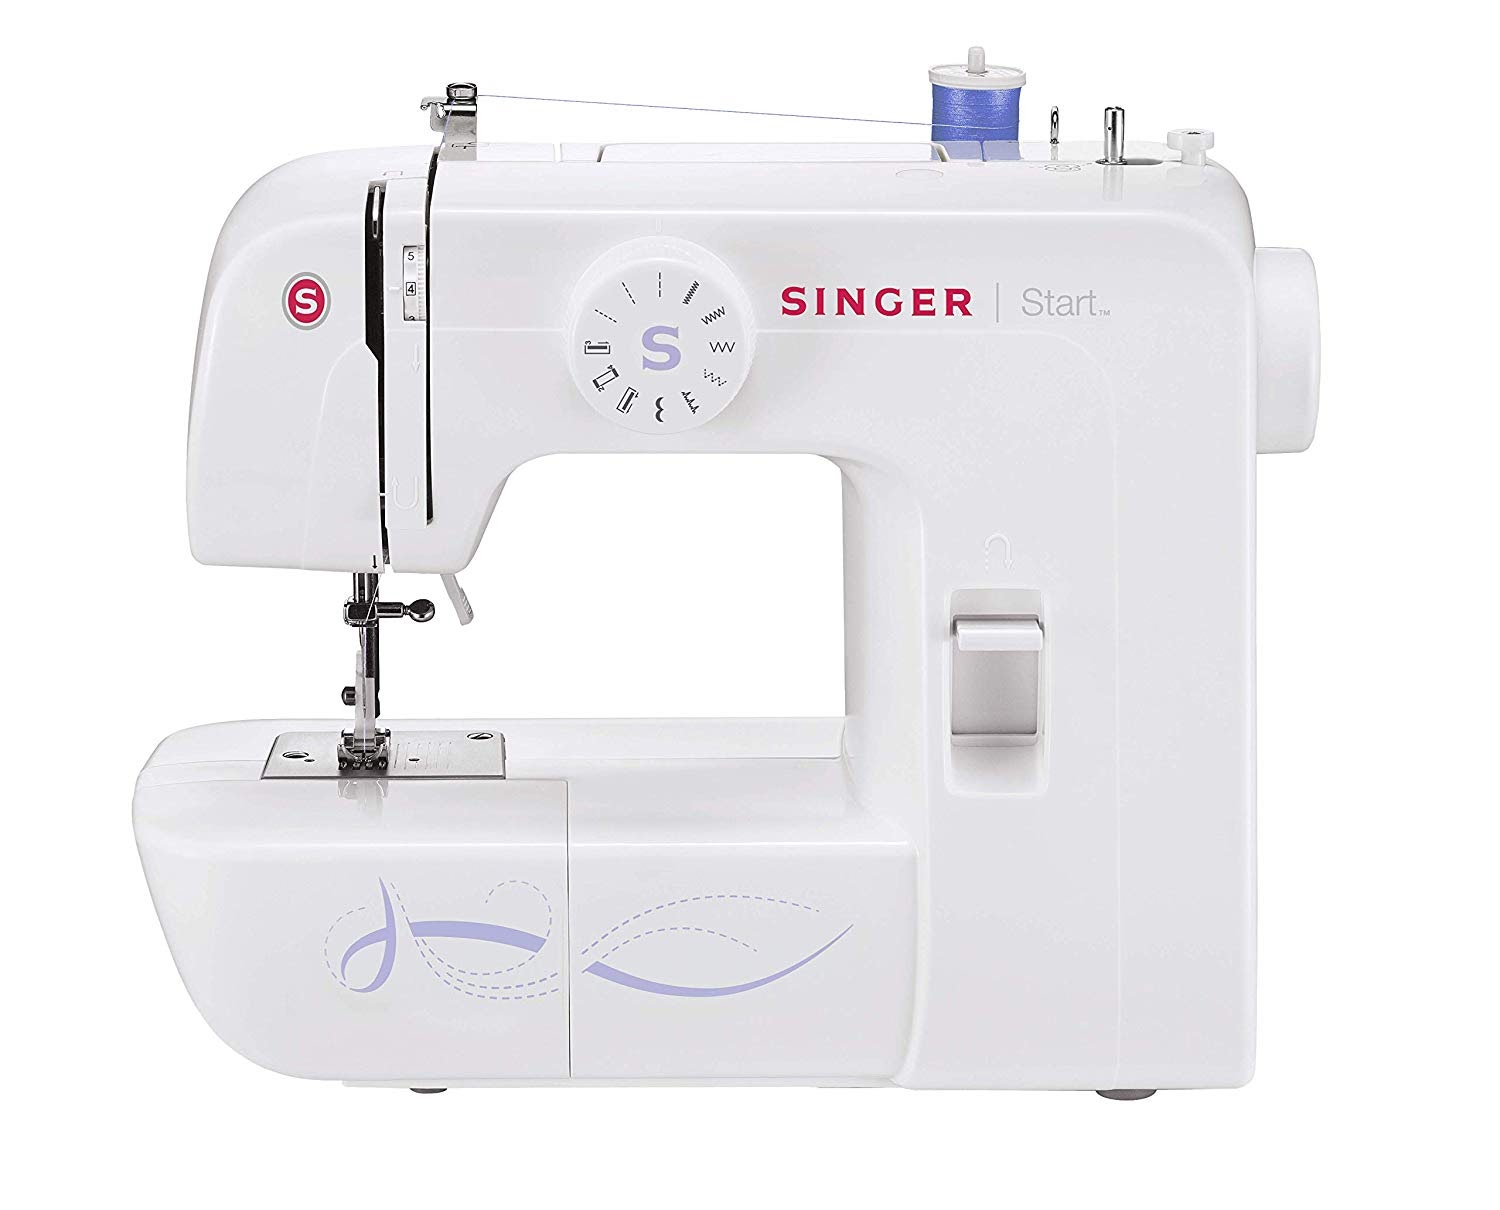 Sewing machines in India